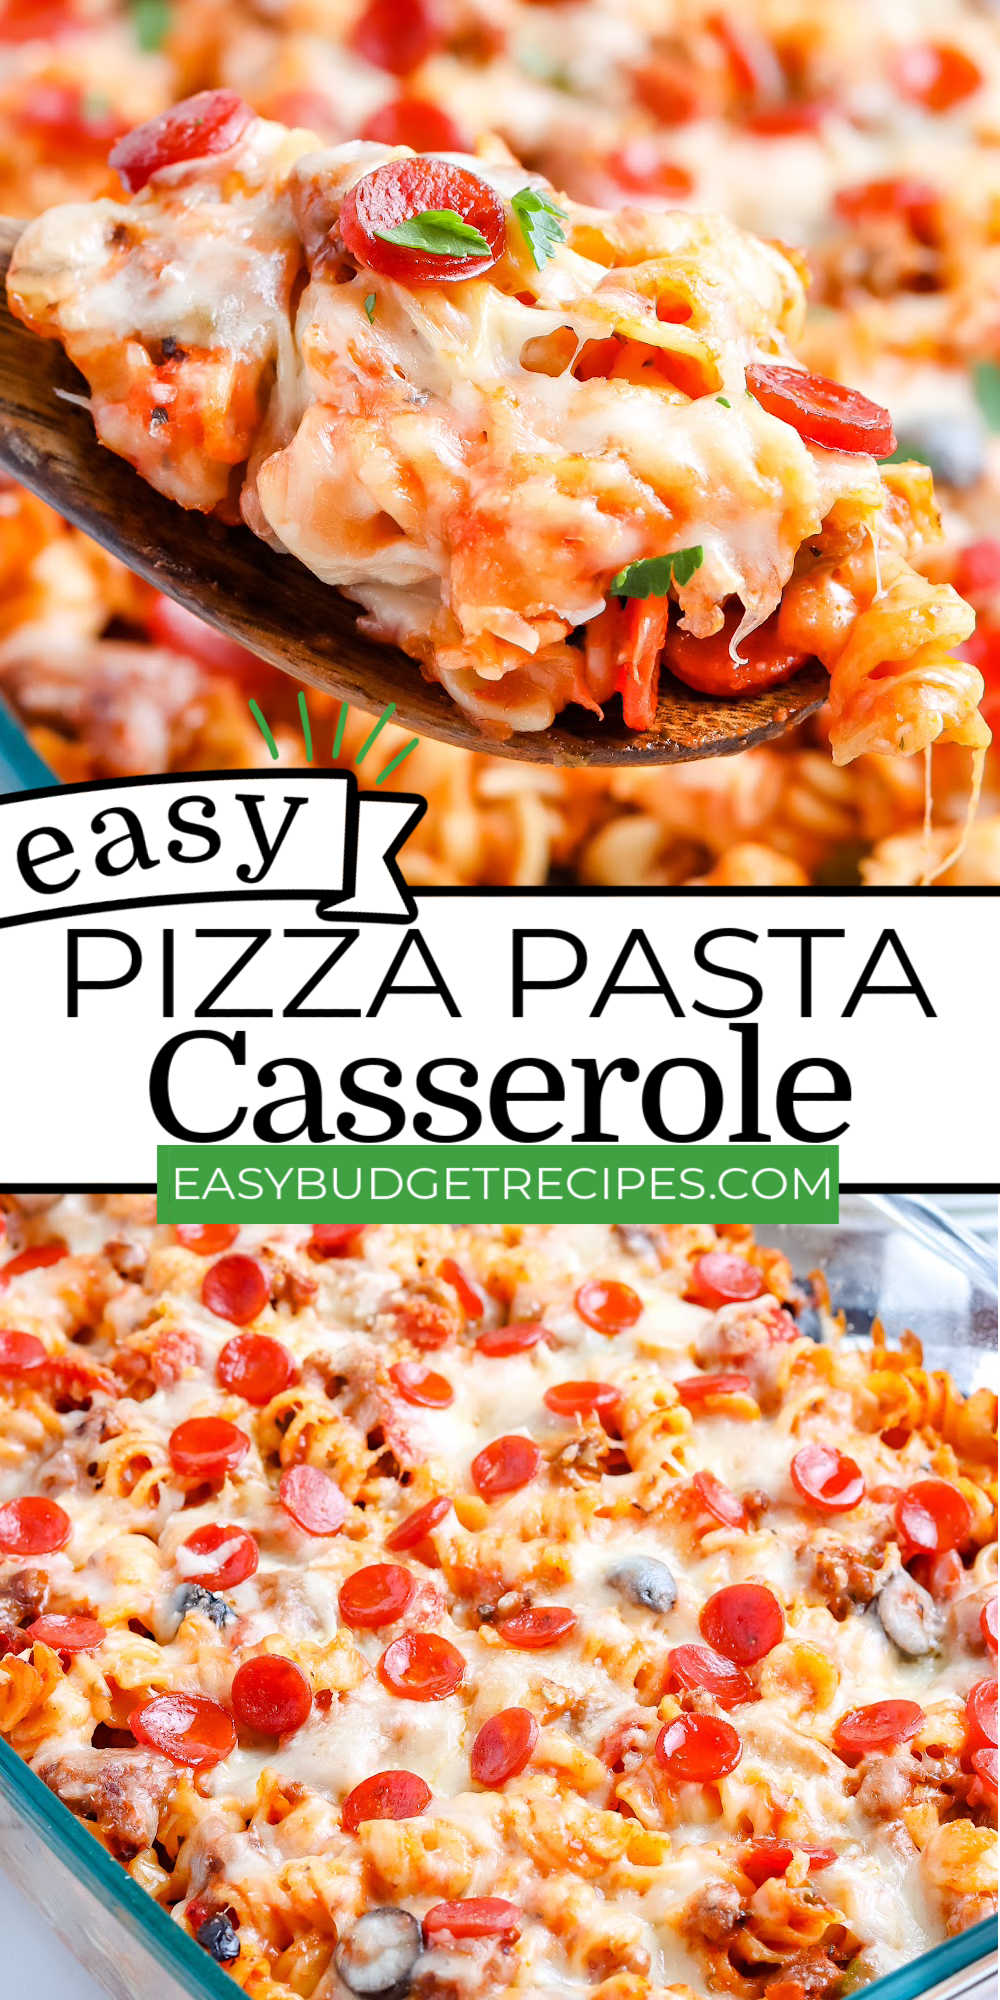 This Pizza Casserole recipe is loaded with rotini pasta, pizza toppings, and plenty of melted mozzarella cheese. It's a family favorite that's easy to make and feeds a crowd! via @easybudgetrecipes